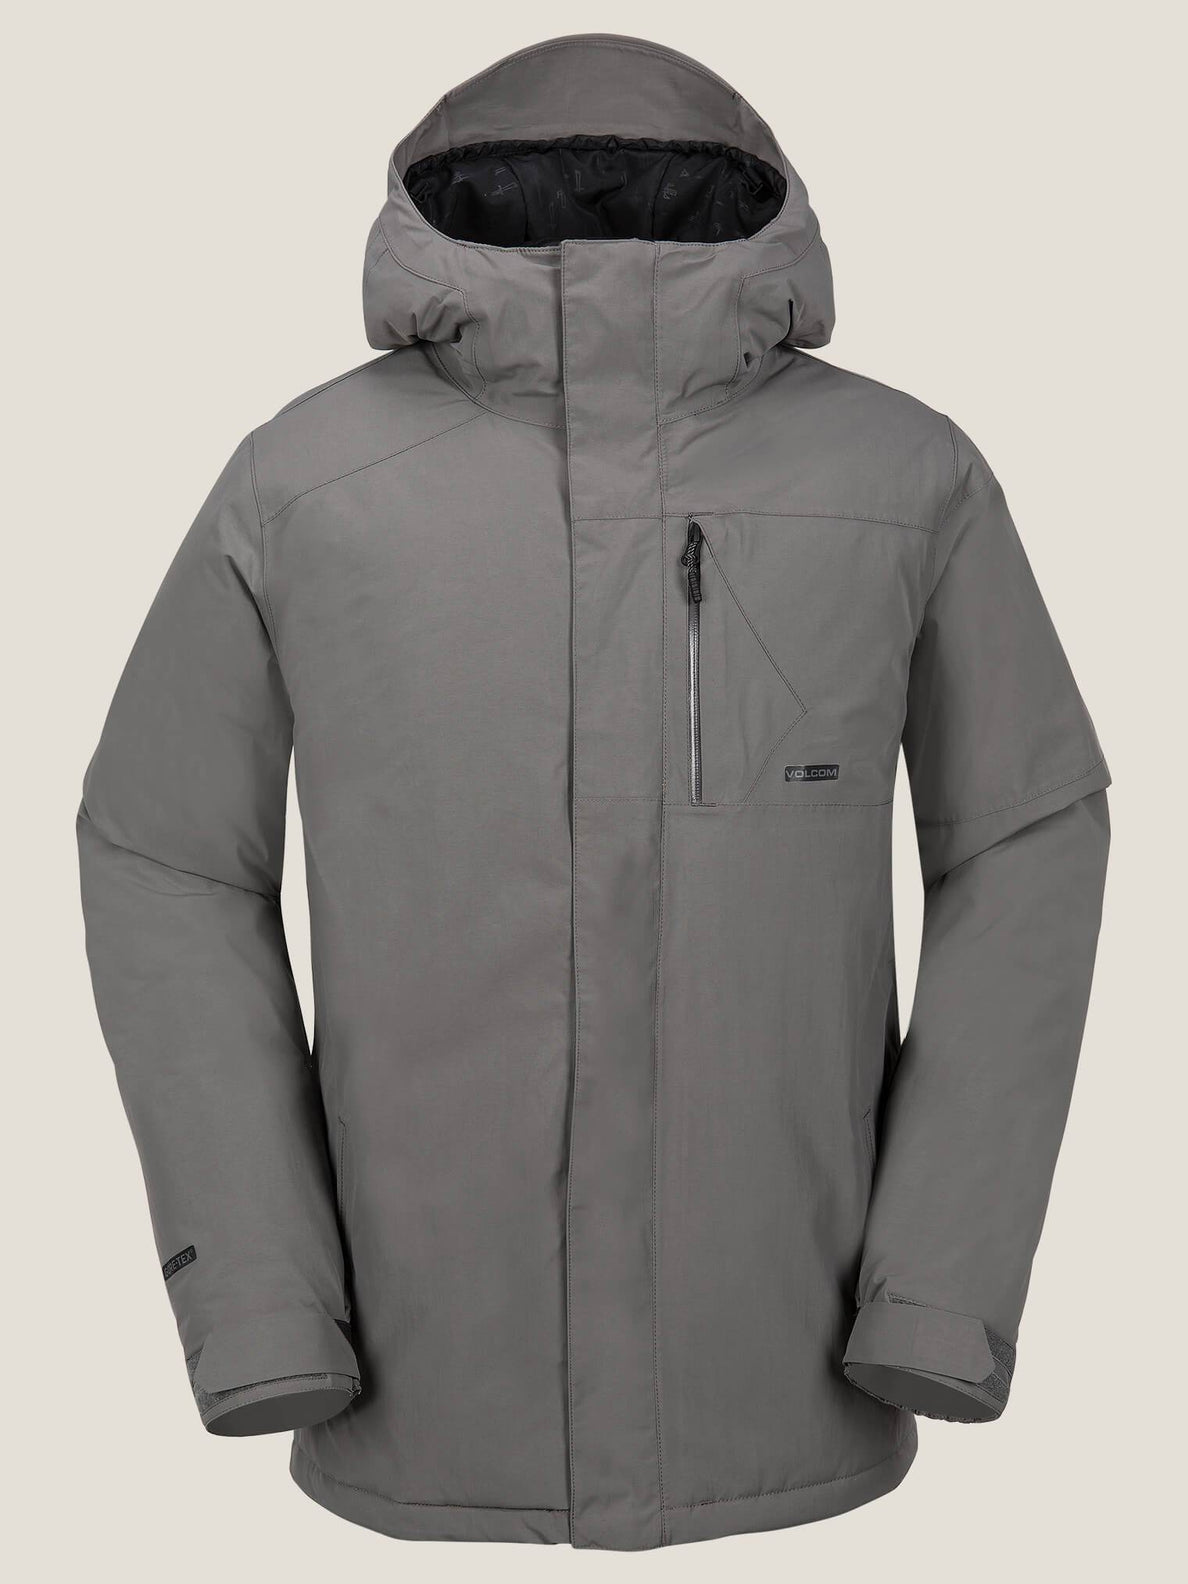 L Insulated Gore-tex® Jacket In Charcoal Grey, Front View